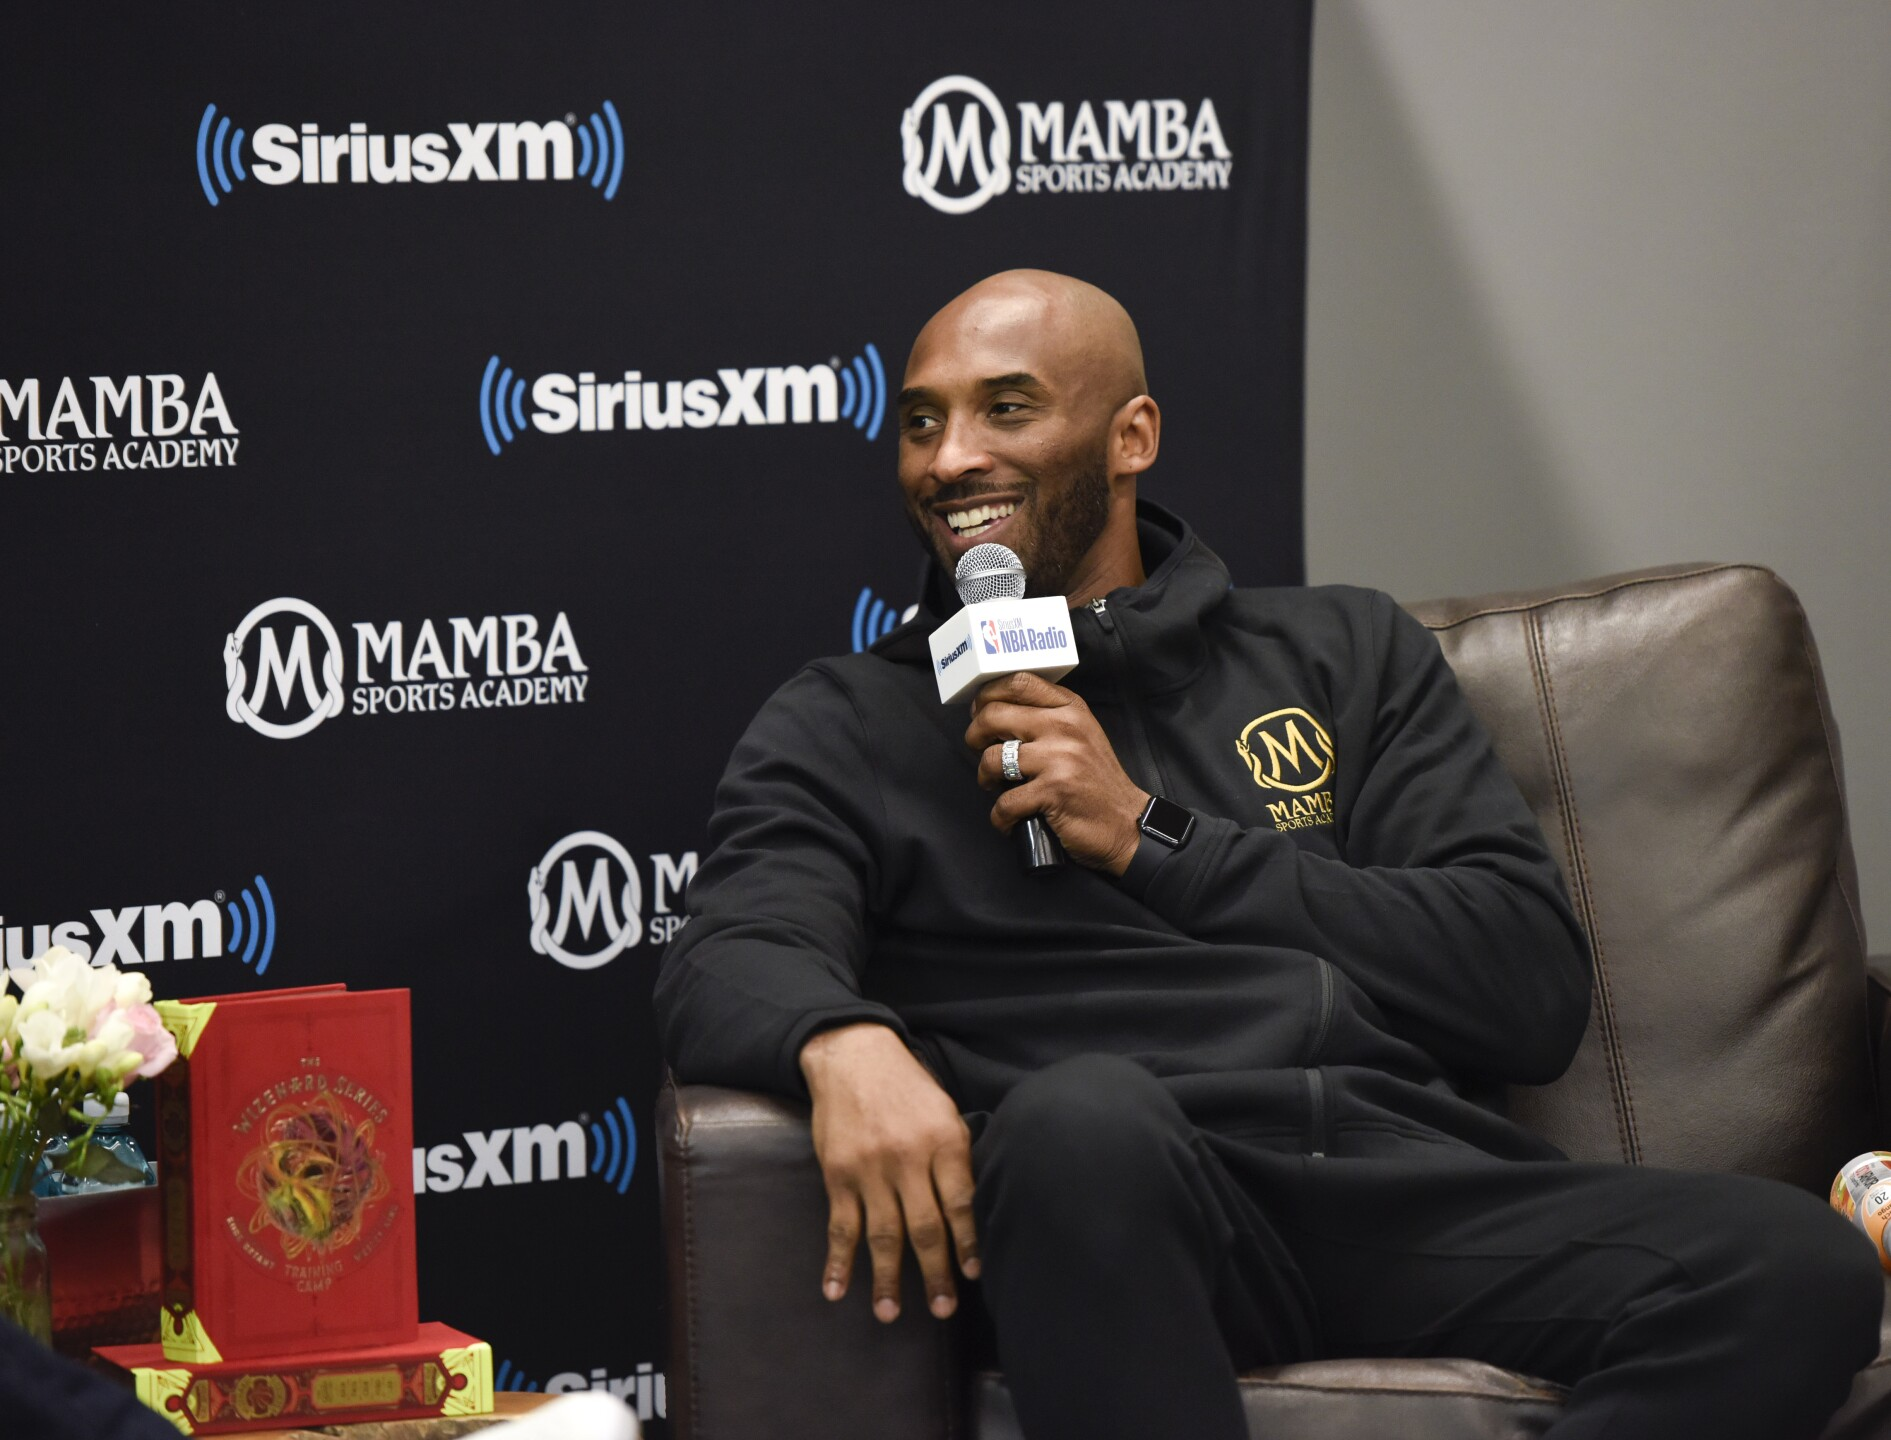 SiriusXM Presents A Town Hall With NBA Legend Kobe Bryant at the Mamba Sports Academy